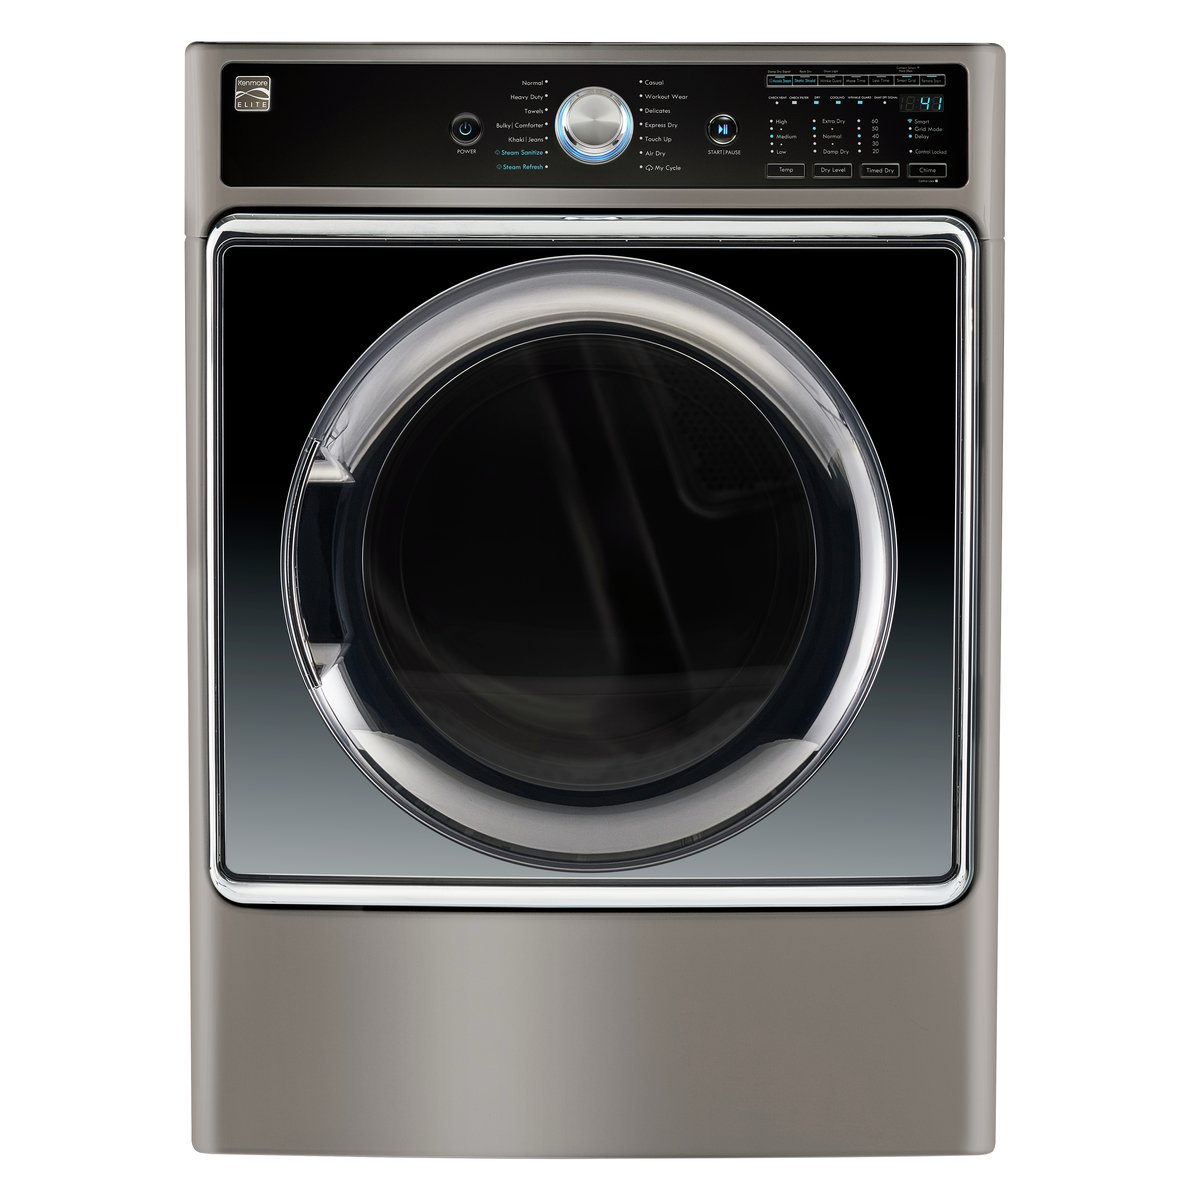 Kenmore Smart 81983 9.0 cu. ft. Electric Dryer with Accela Steam Technology in Metallic Silver - Compatible with Amazon Alexa, includes delivery and hookup (Available in select cities only)